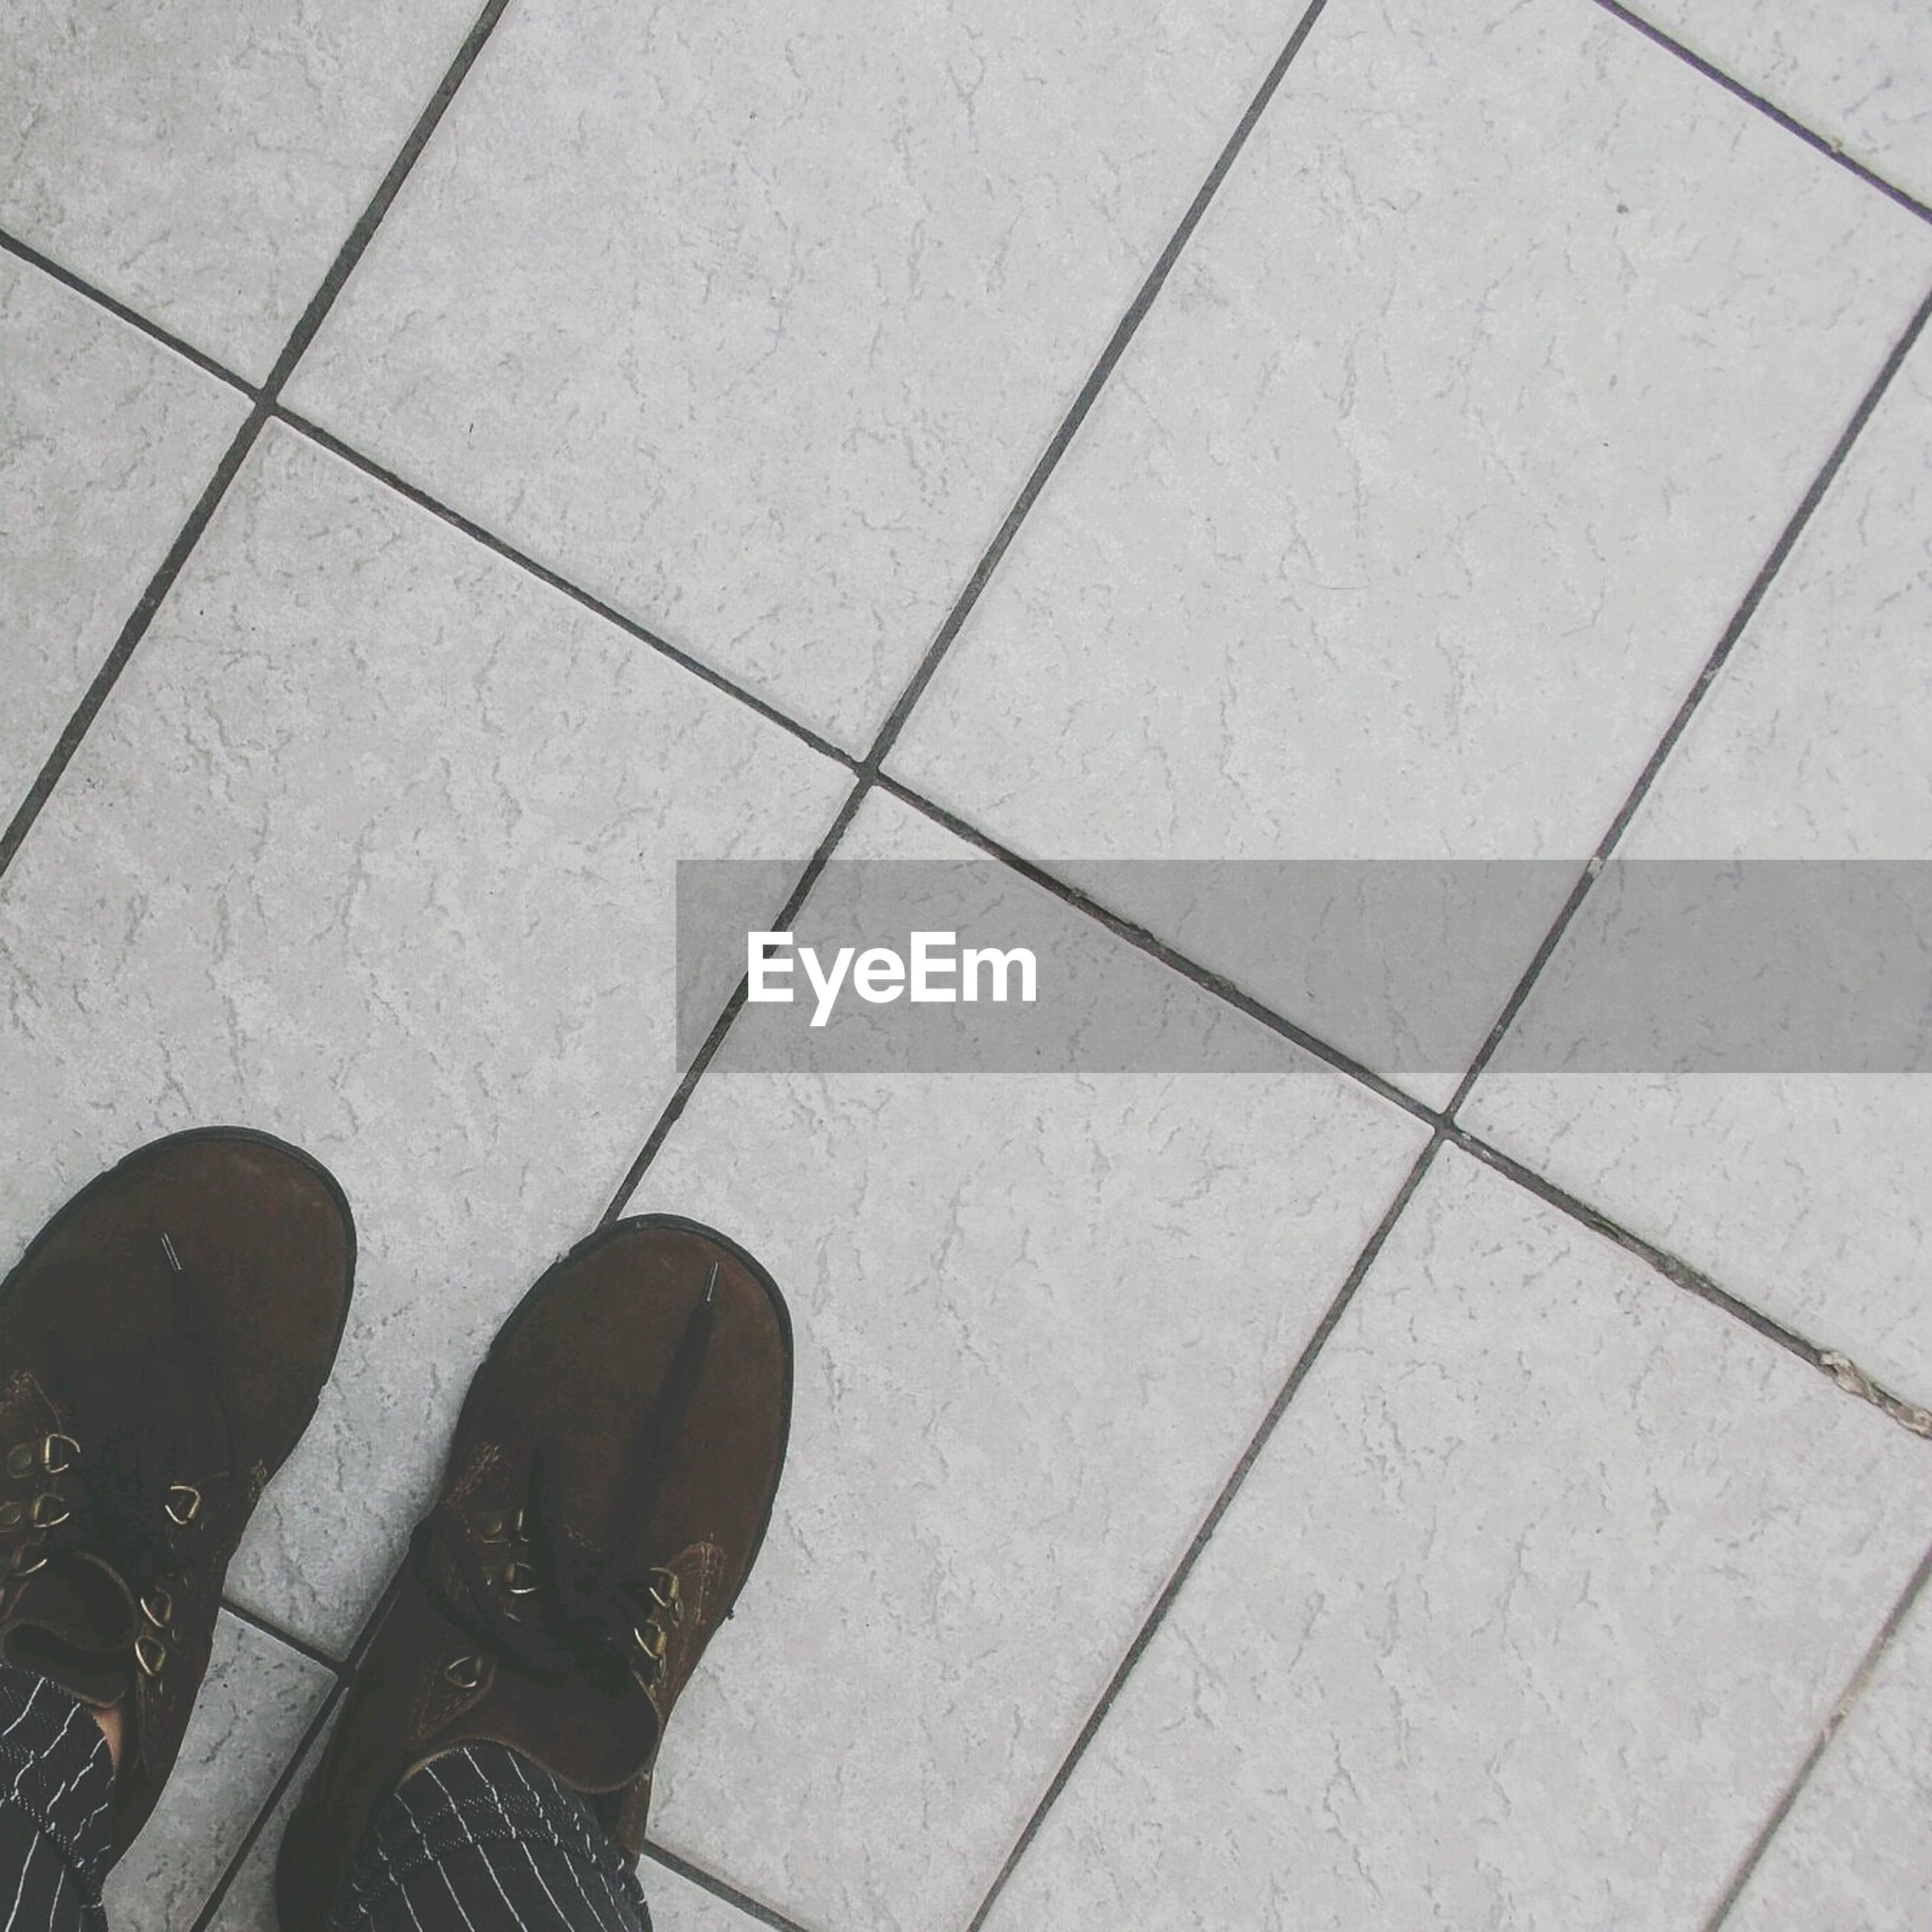 high angle view, tiled floor, flooring, pattern, indoors, tile, paving stone, geometric shape, floor, shadow, shoe, design, directly above, day, sunlight, low section, footpath, elevated view, full frame, square shape